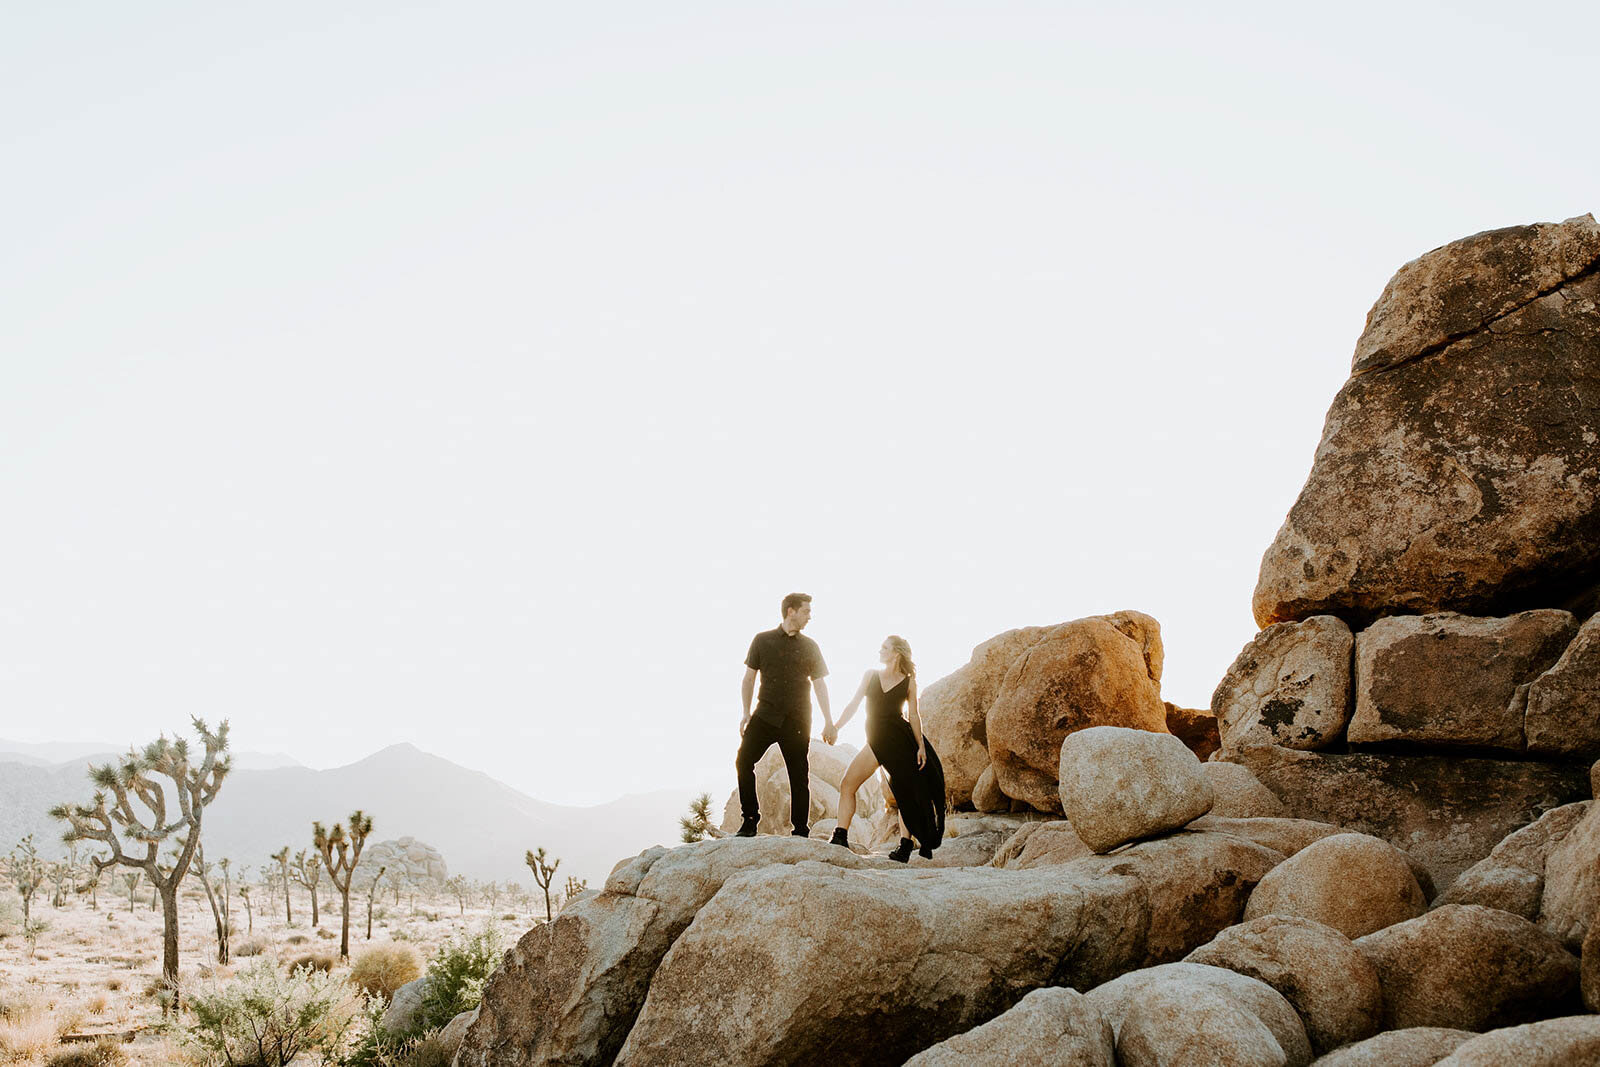 joshua-tree-family-photos-2019-3521.jpg